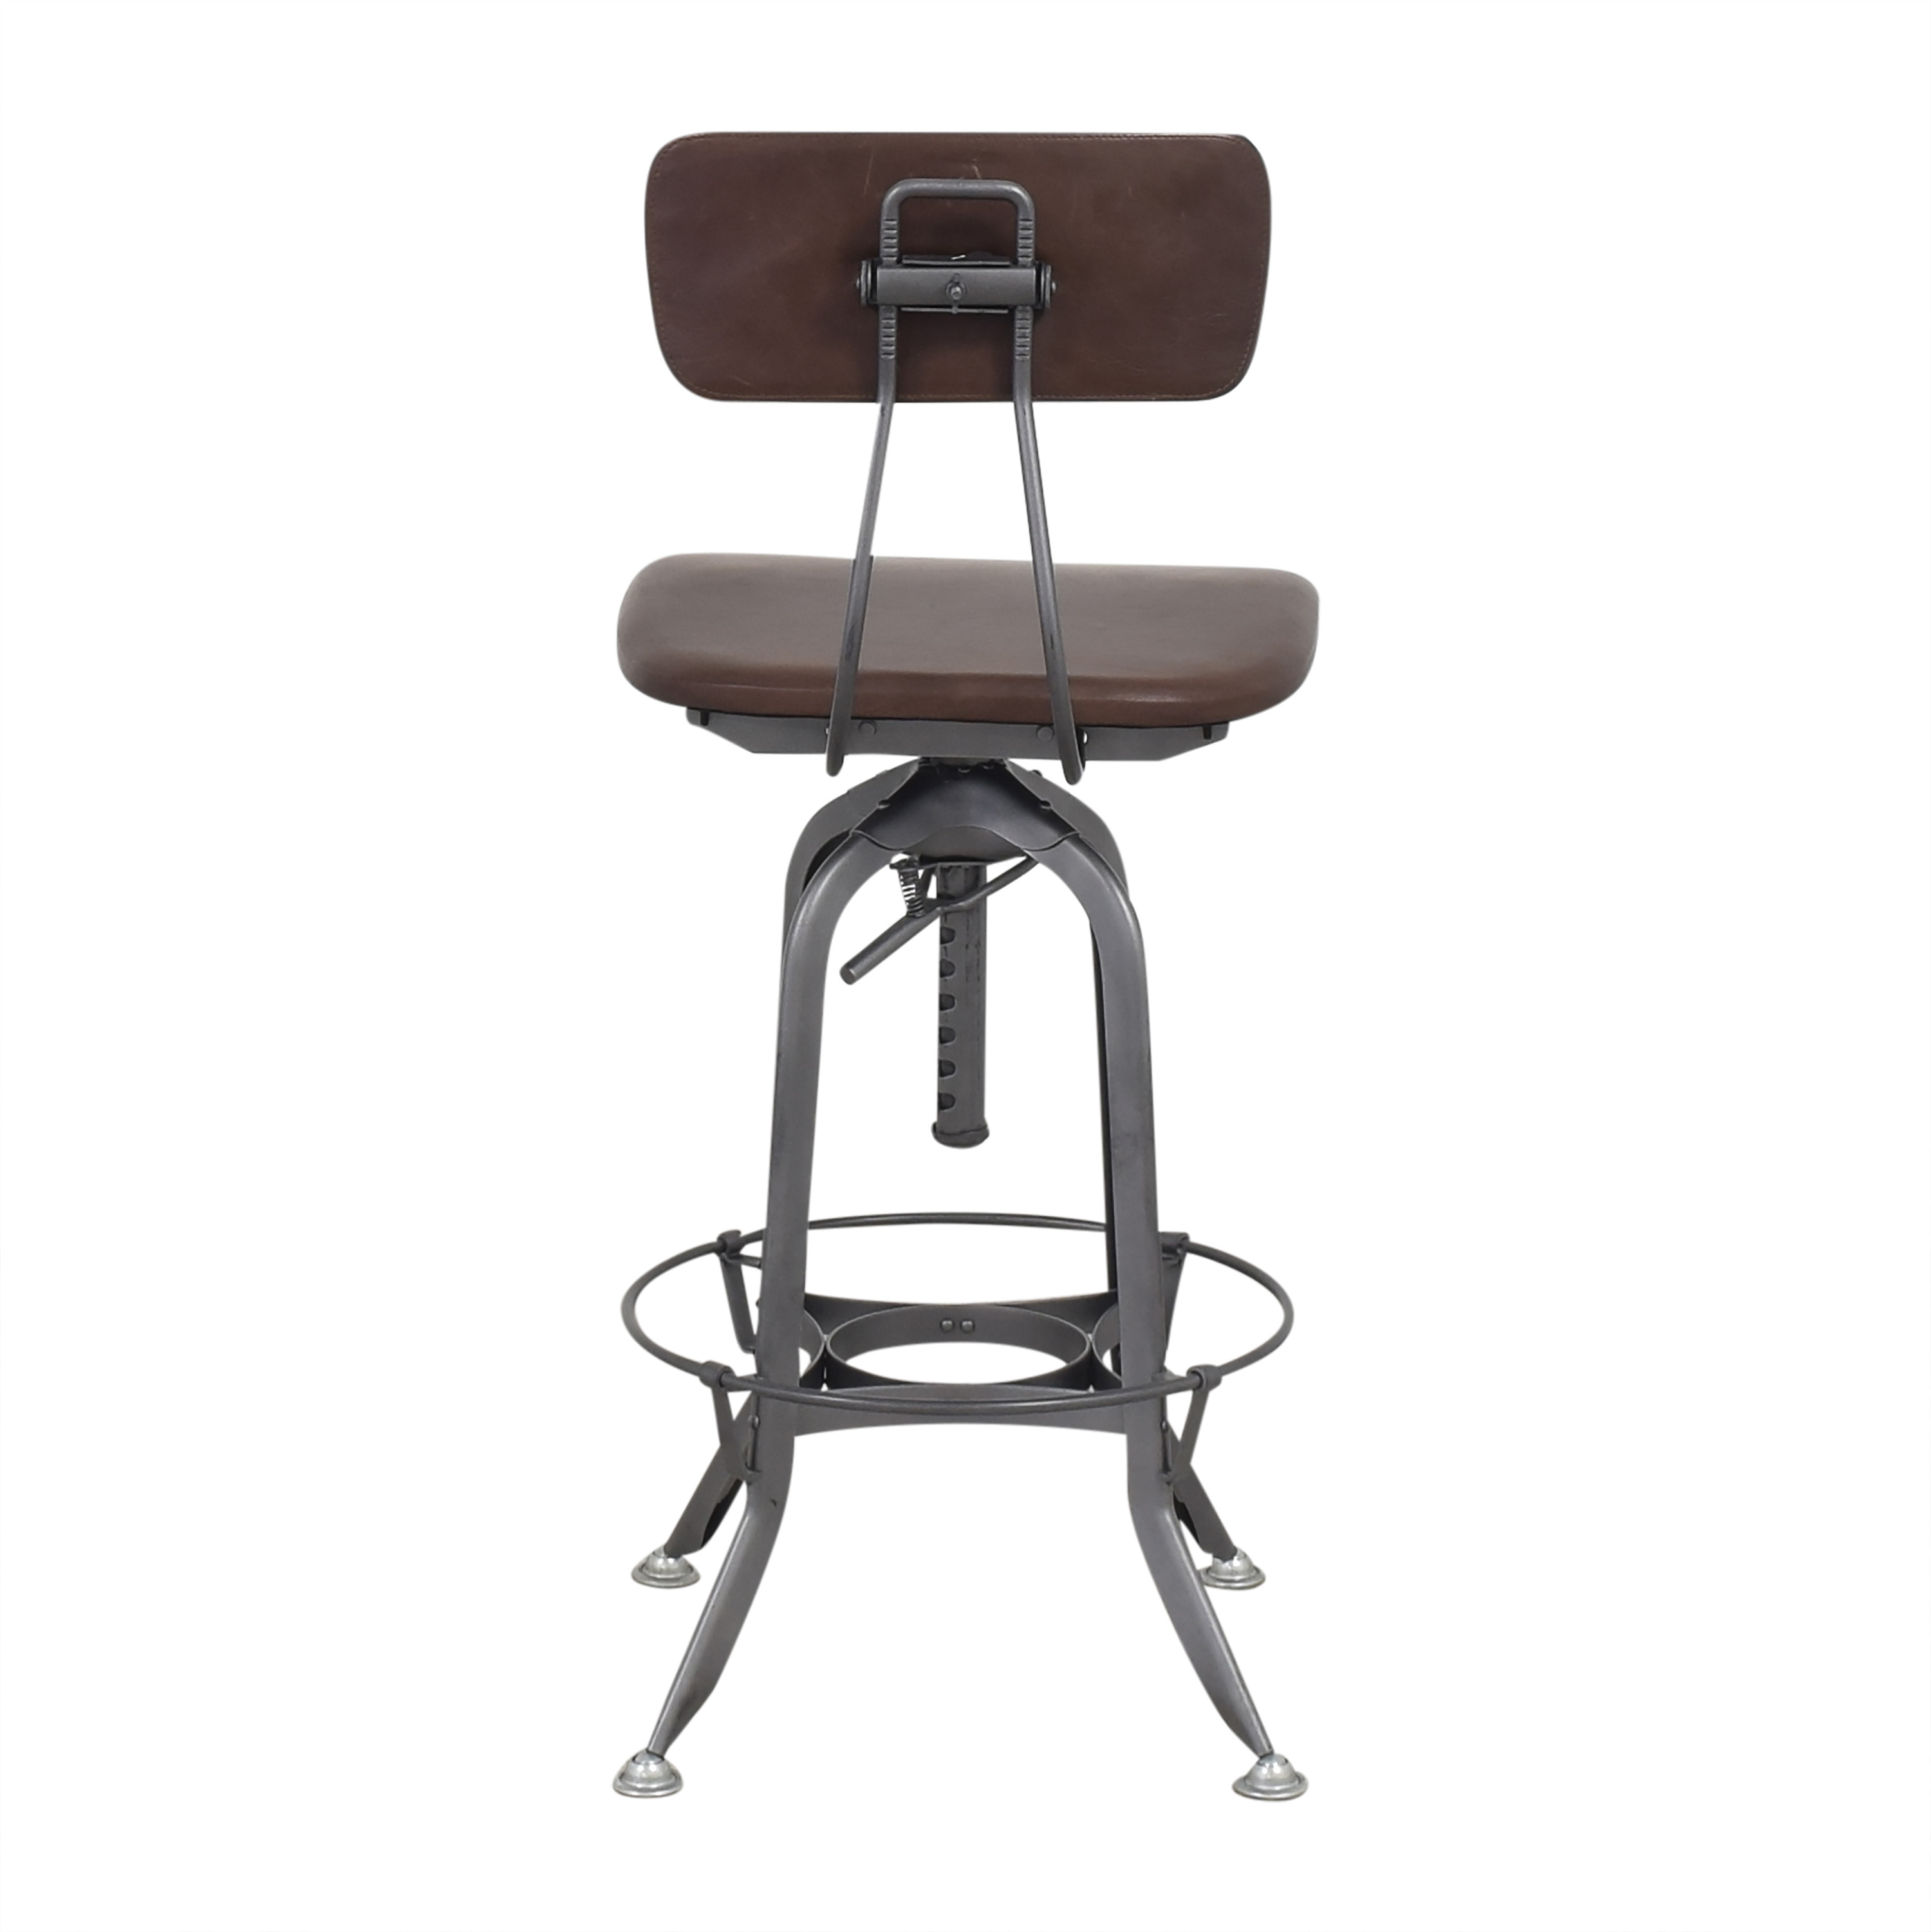 Restoration Hardware Restoration Hardware 1940s Vintage Toledo Bar Chair for sale